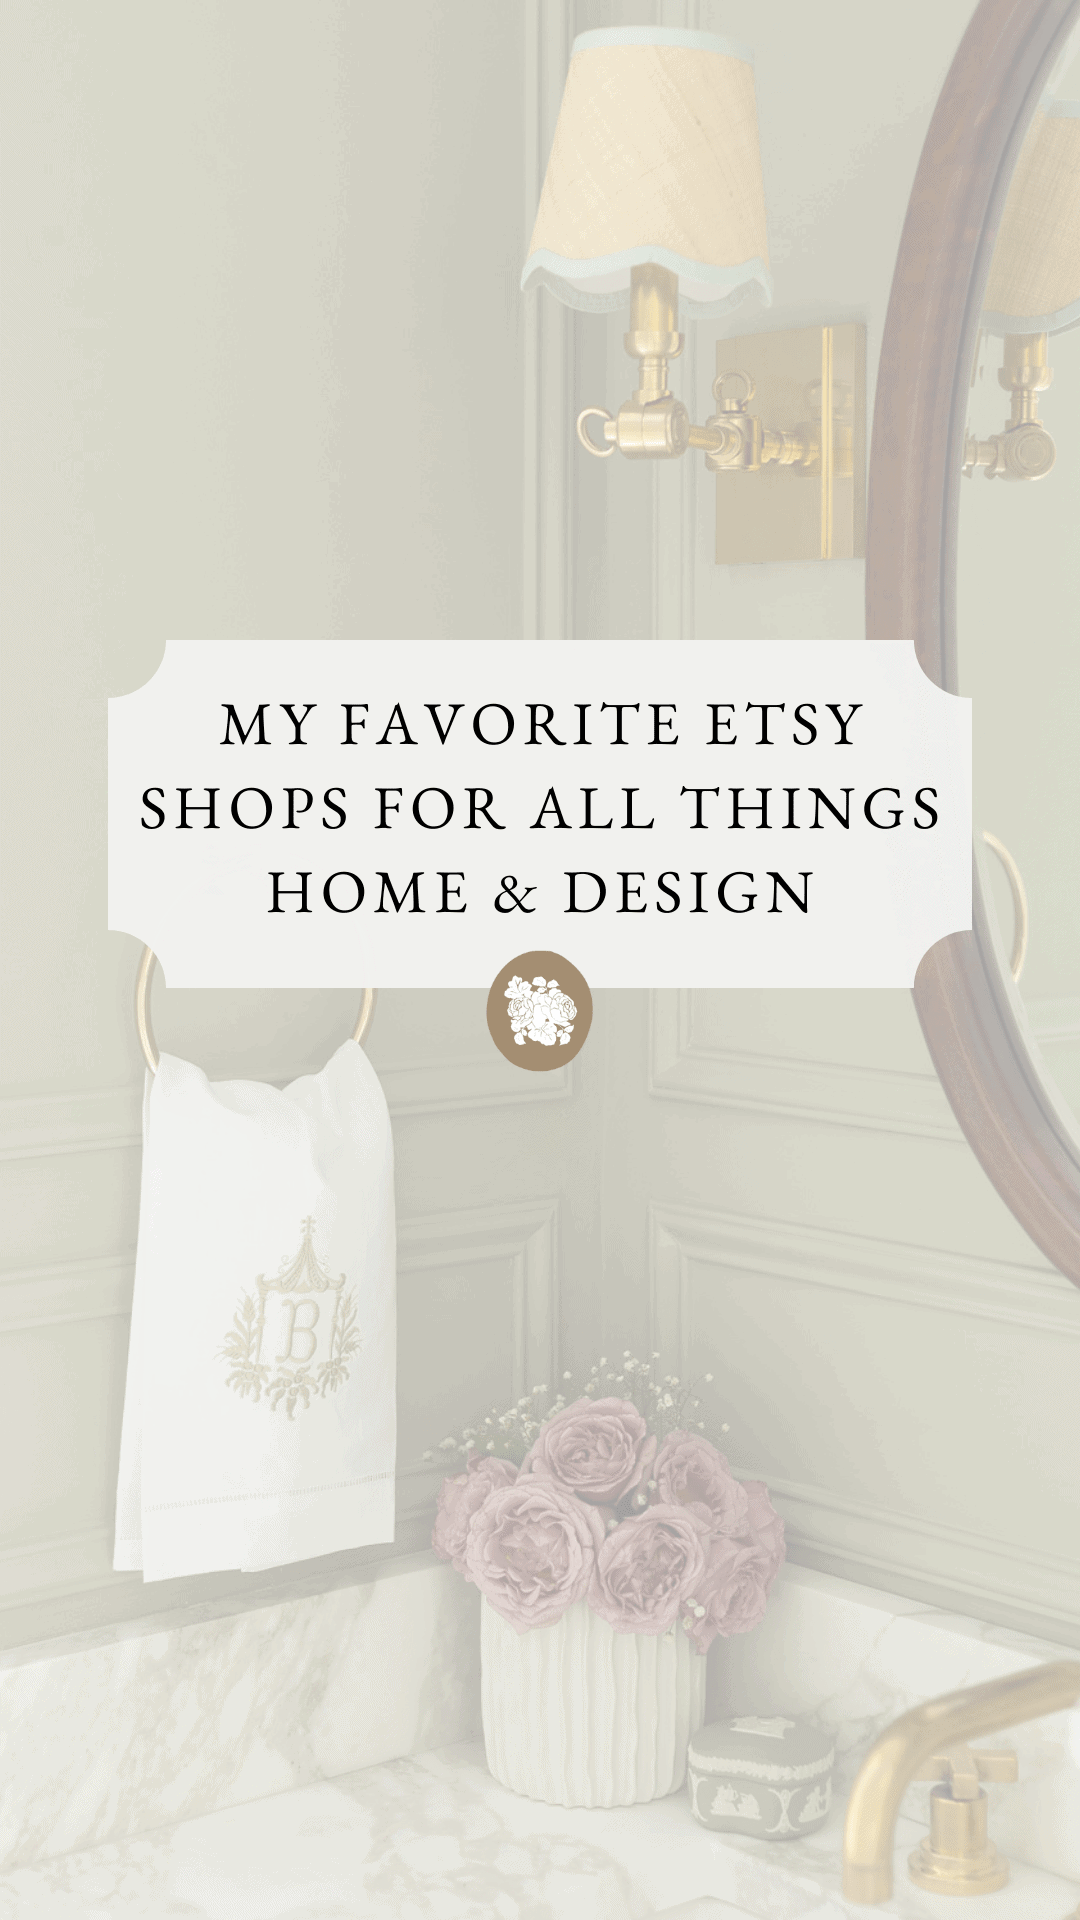 BEST-ETSY-SHOPS-FOR-HOME-DECOR-AND-DESIGN